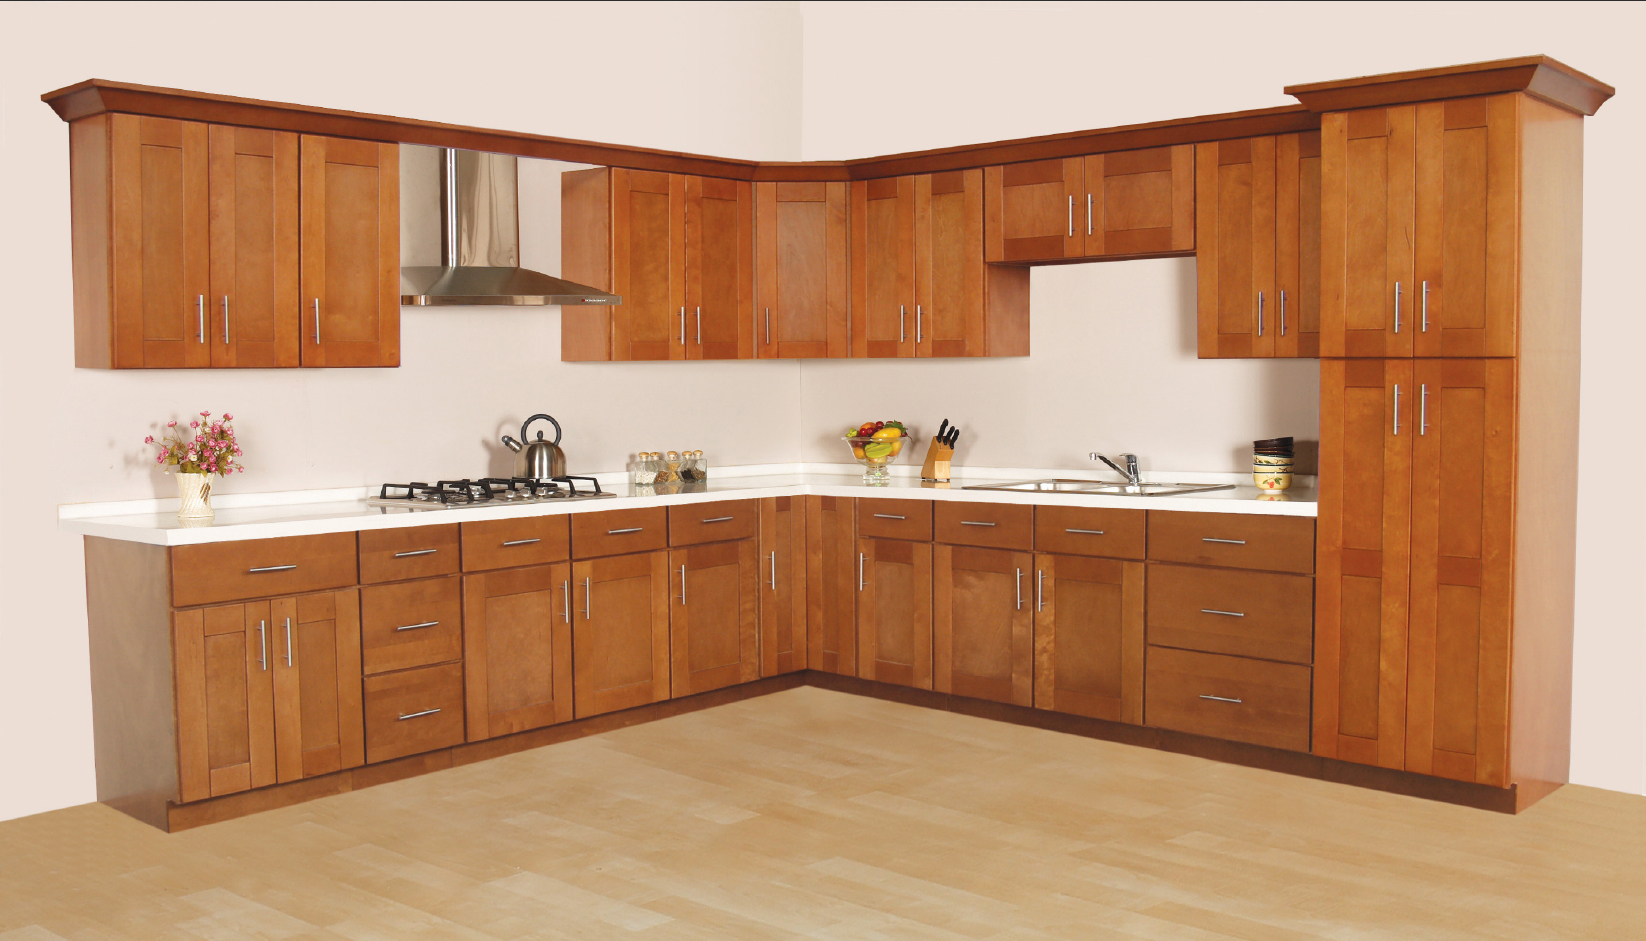 Menards kitchen cabinet price and details home and for Kitchen cabinets pictures